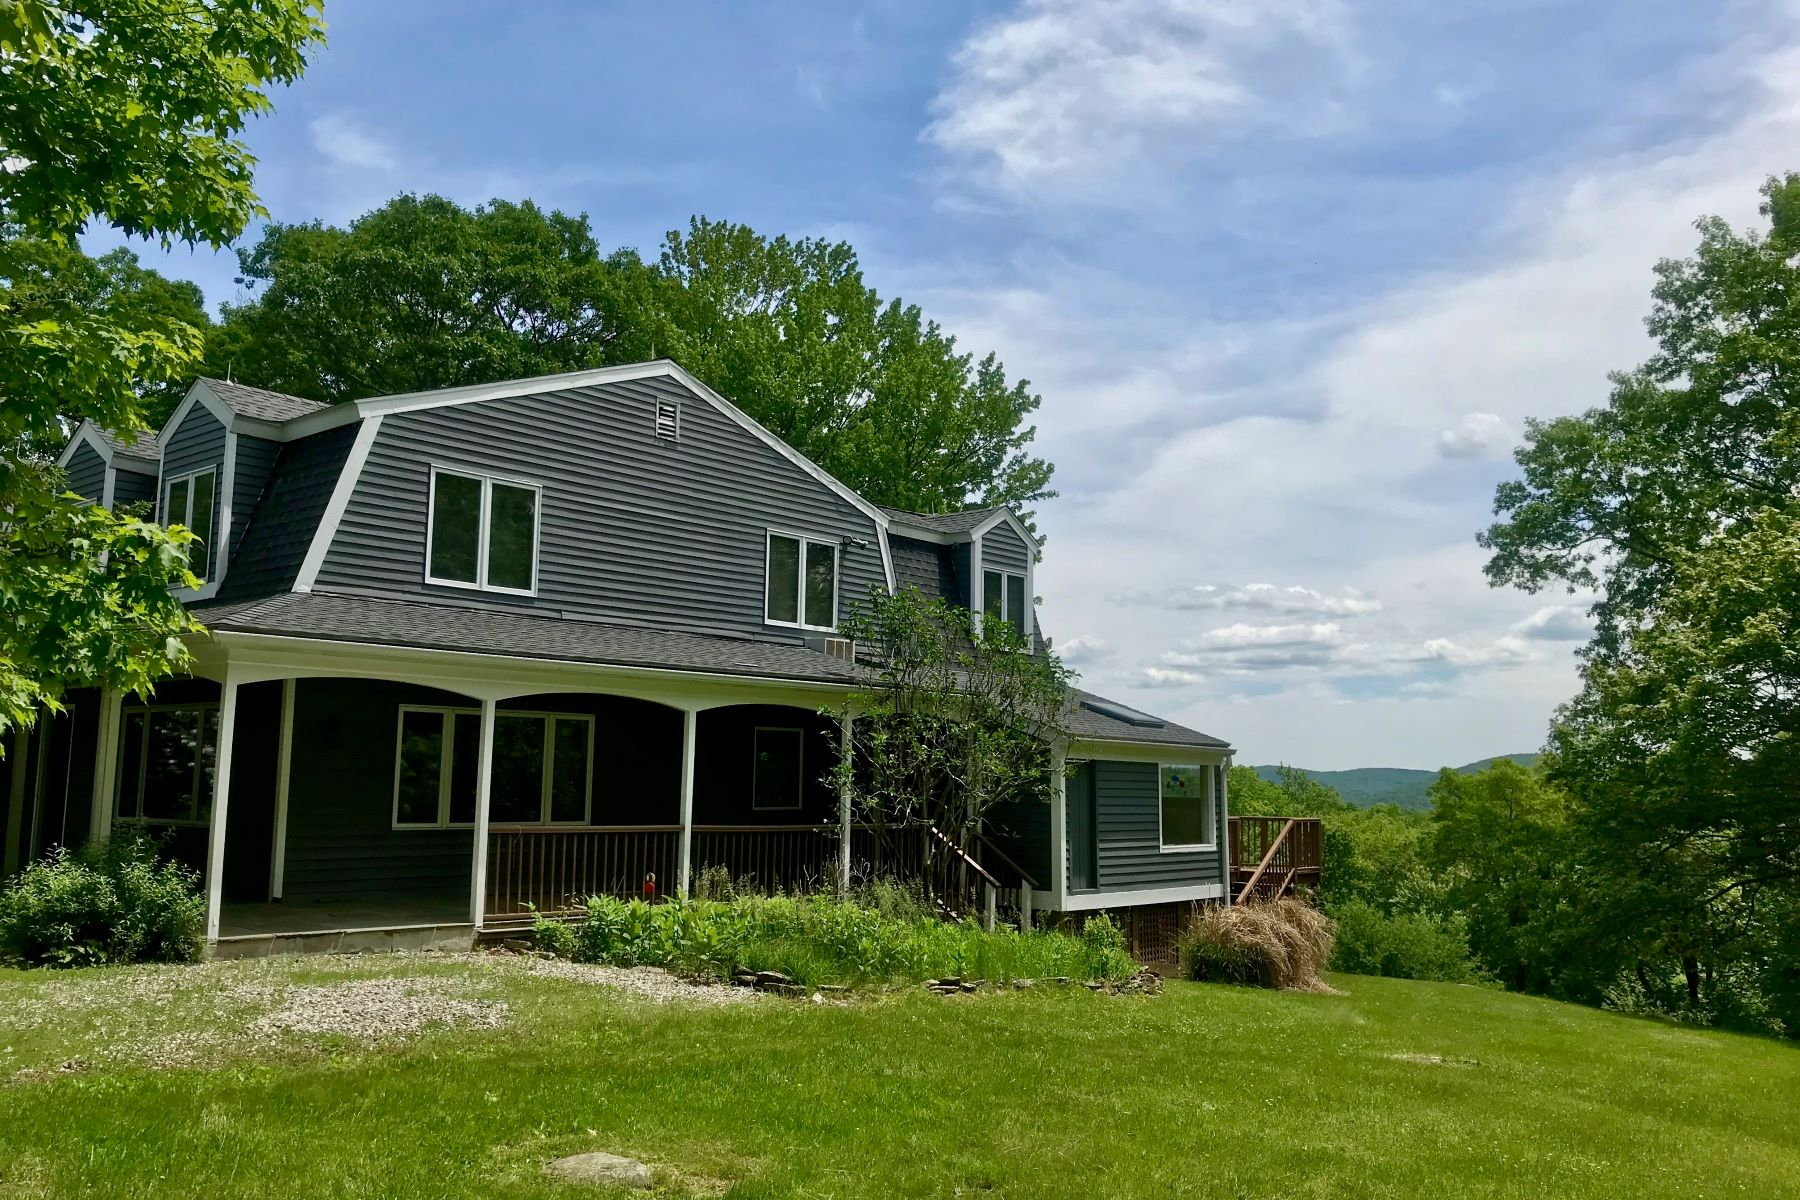 single family homes for Sale at The Views 22 Morey Road, Sharon, Connecticut 06069 United States